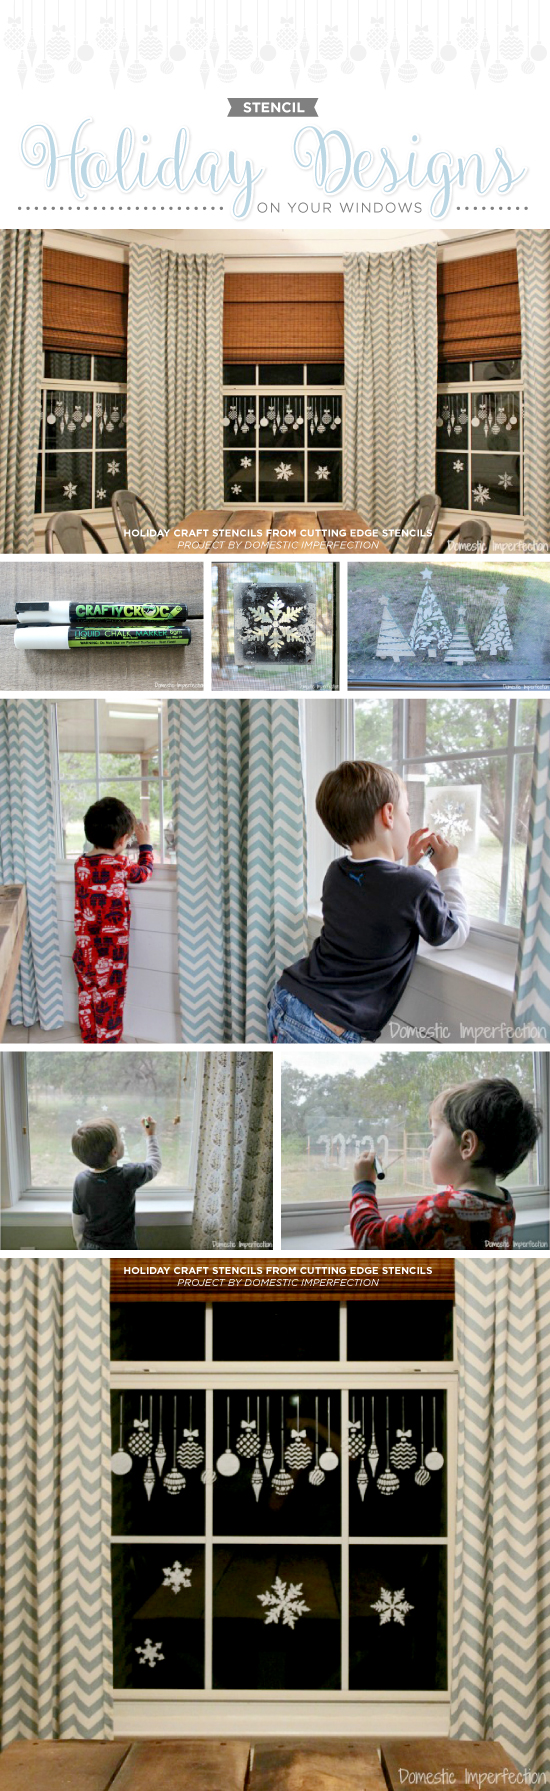 Cutting edge stencils shares how to decorate your windows using holiday themed stencils and a chalk